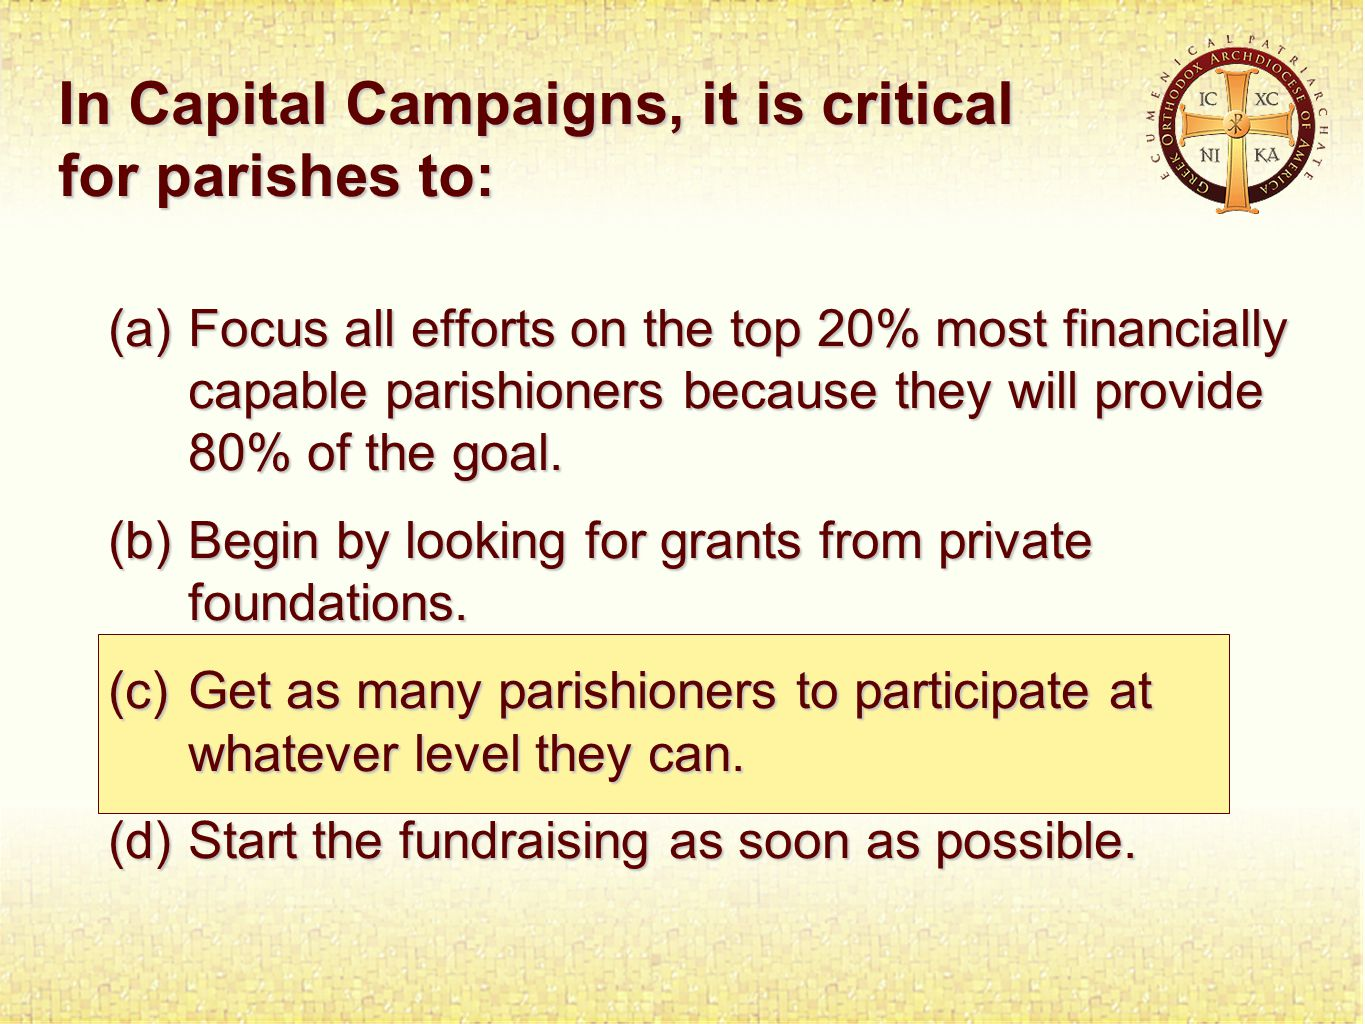 In Capital Campaigns, it is critical for parishes to: (a)Focus all efforts on the top 20% most financially capable parishioners because they will provide 80% of the goal.